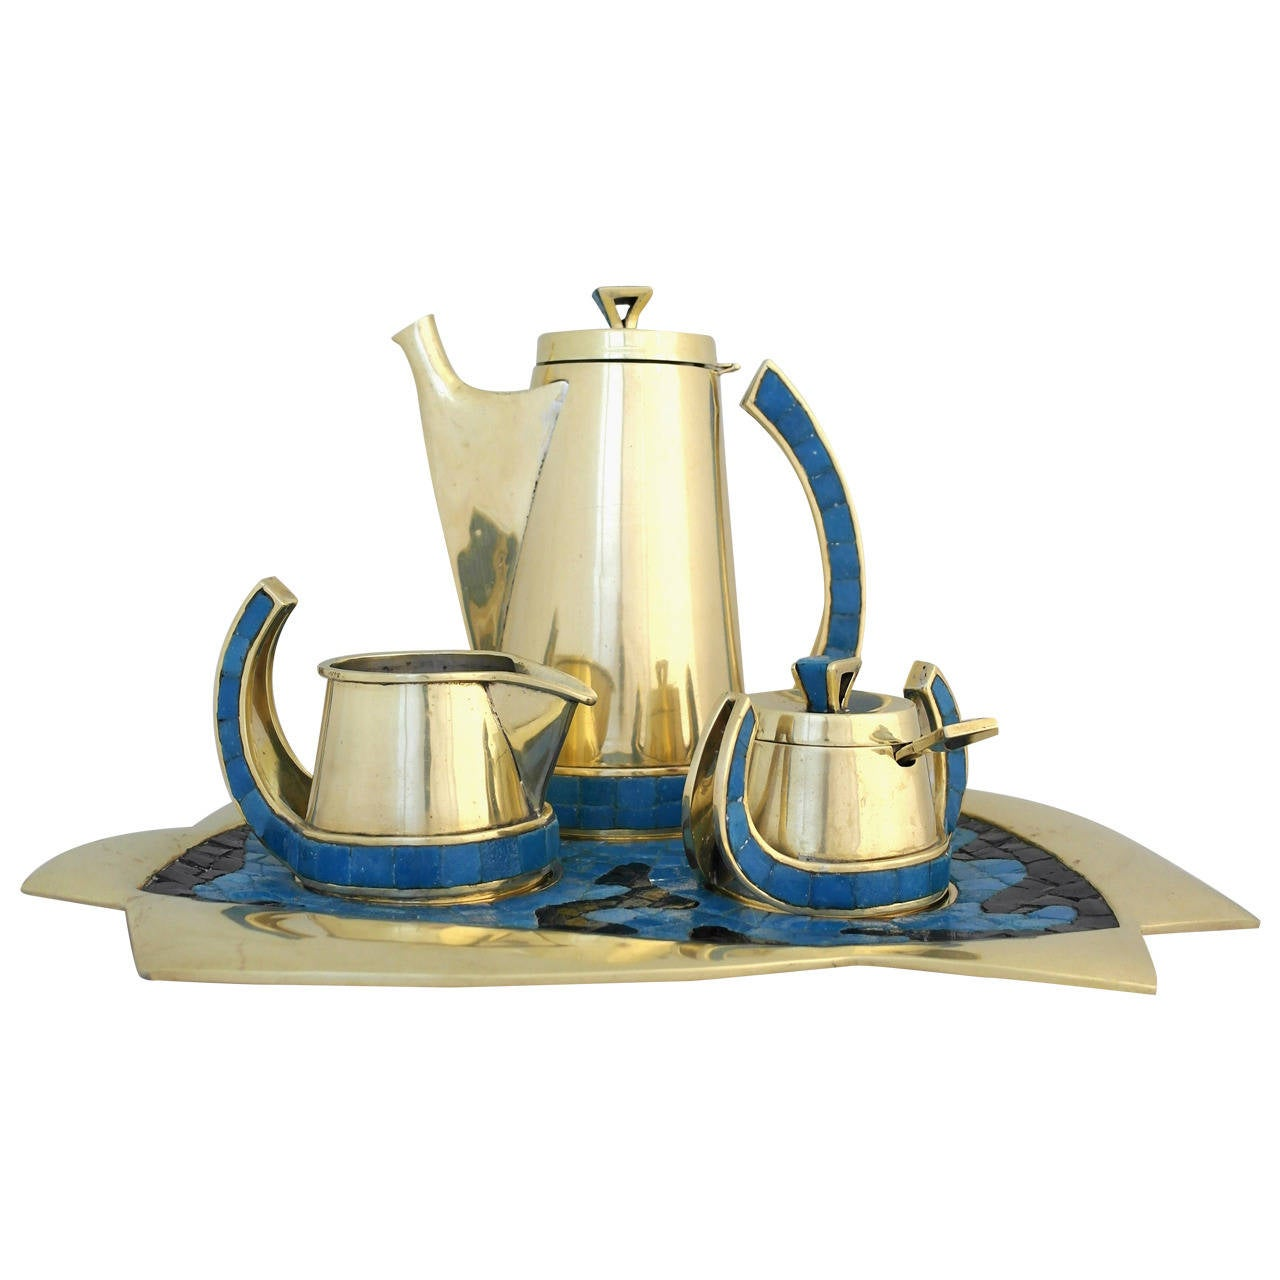 Rare Salvador Teran Modernist Coffee Service circa 1970 Hand-Wrought Brass Tile